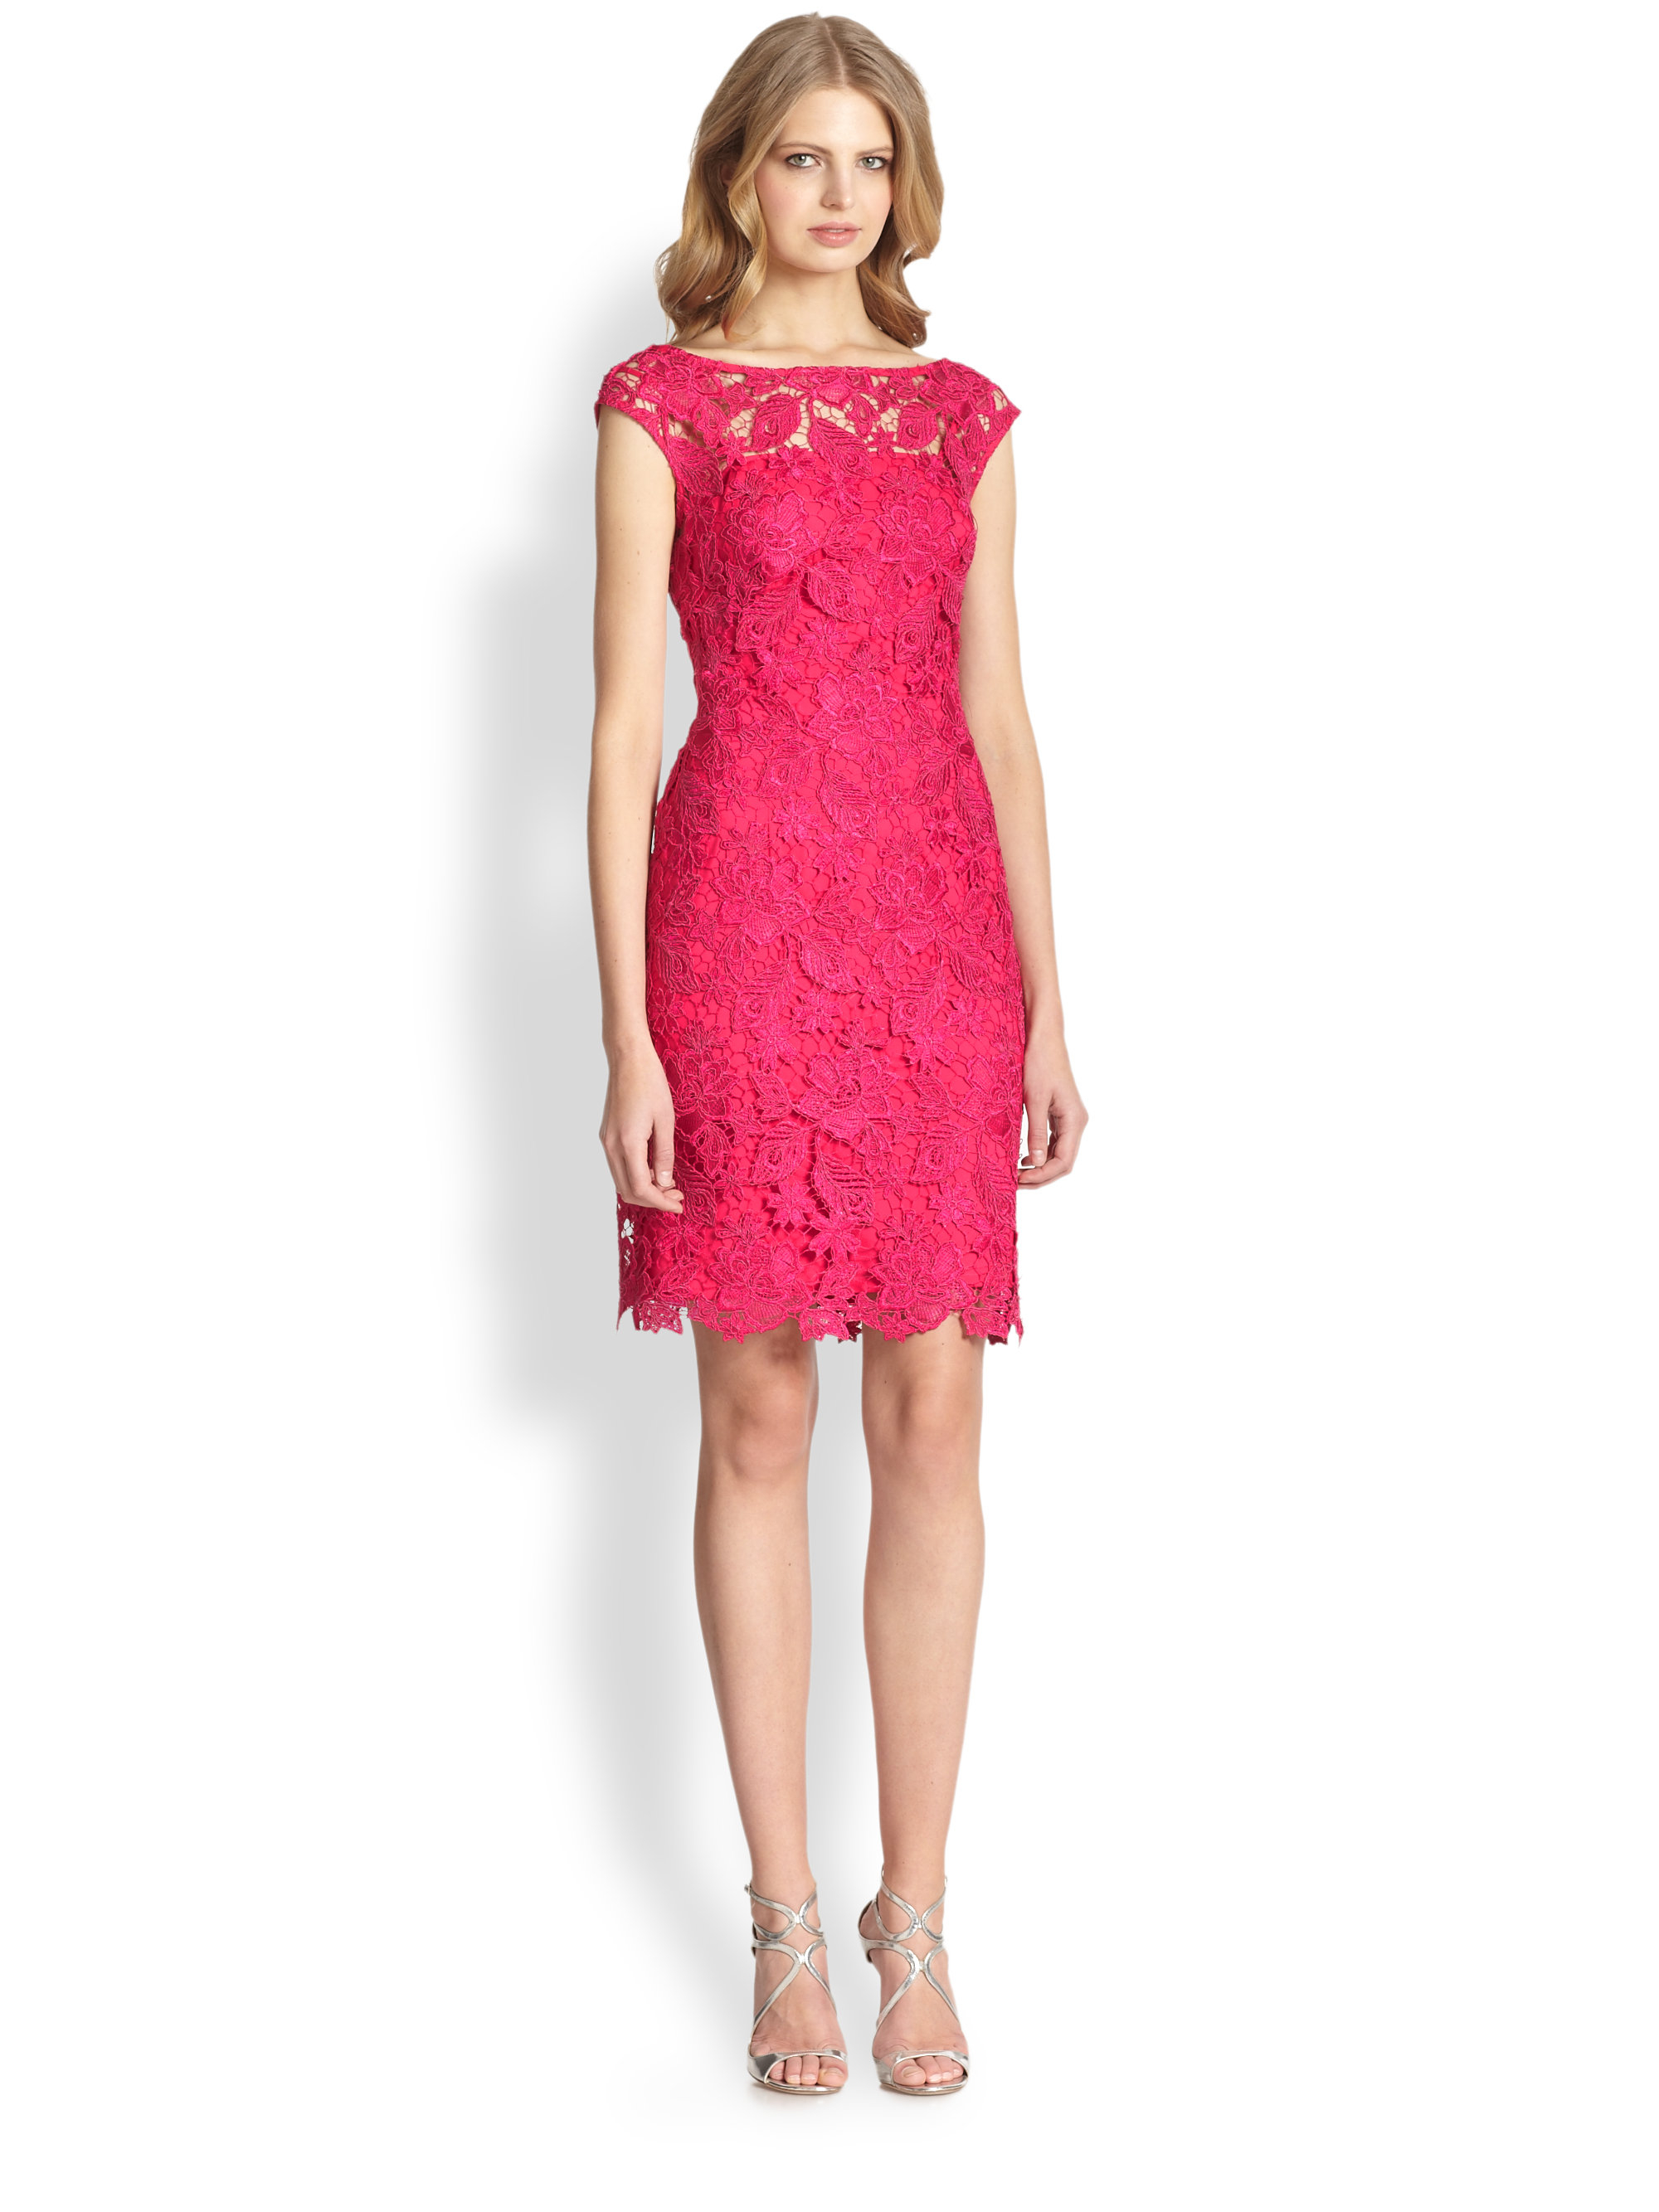 Lyst - Ml monique lhuillier Cap-Sleeve Lace Dress in Pink